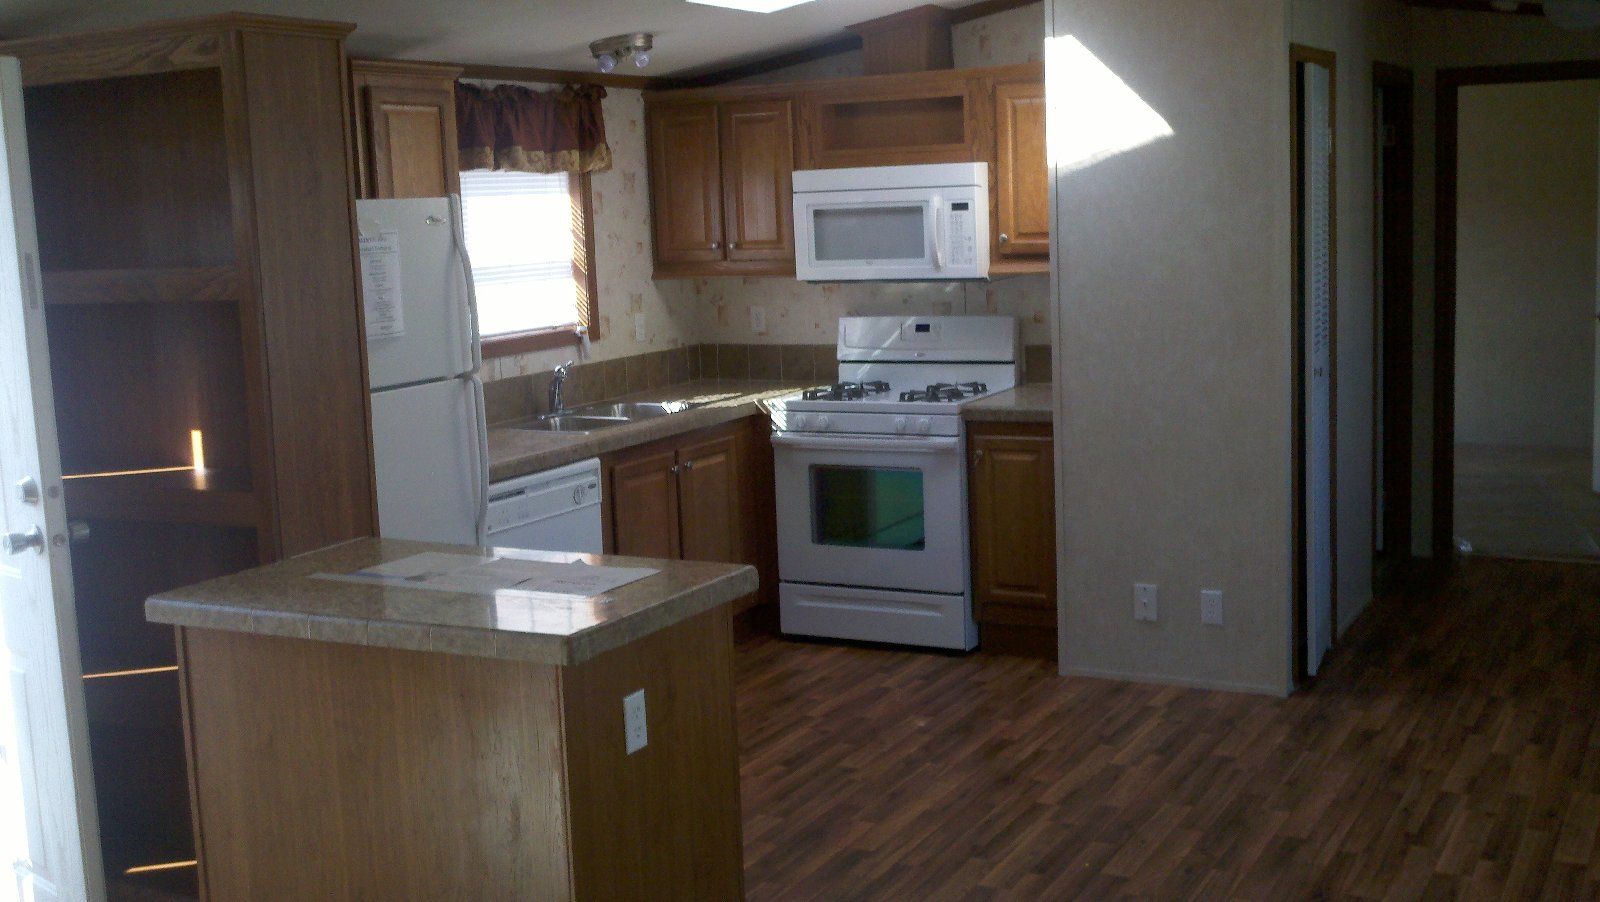 Pictures mobile home kitchens images for Mobile home kitchens pictures